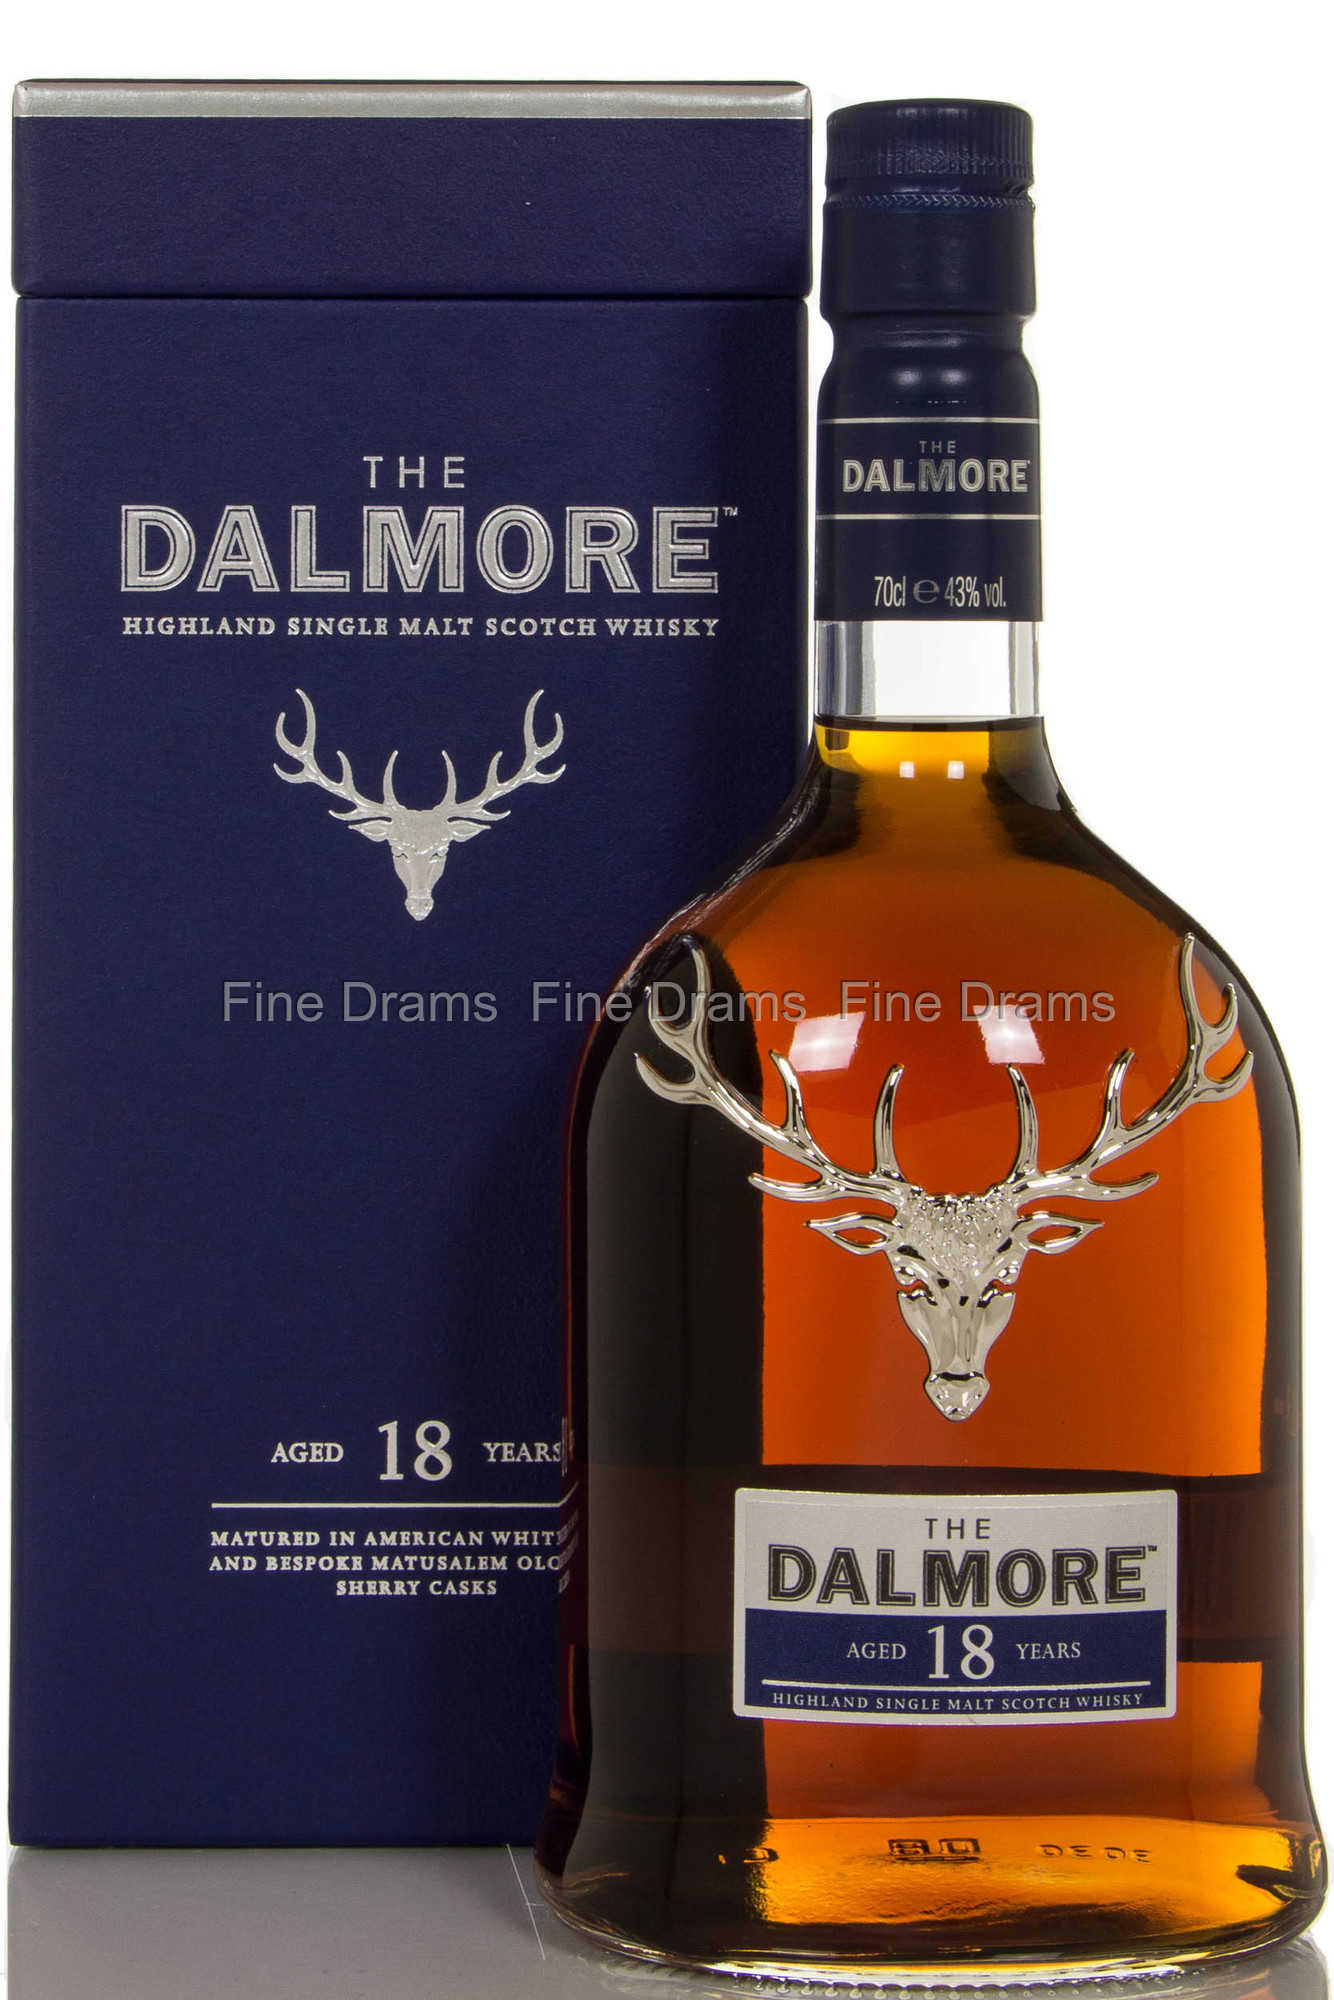 Dalmore 18 Year Old Scotch Single Malt Whisky